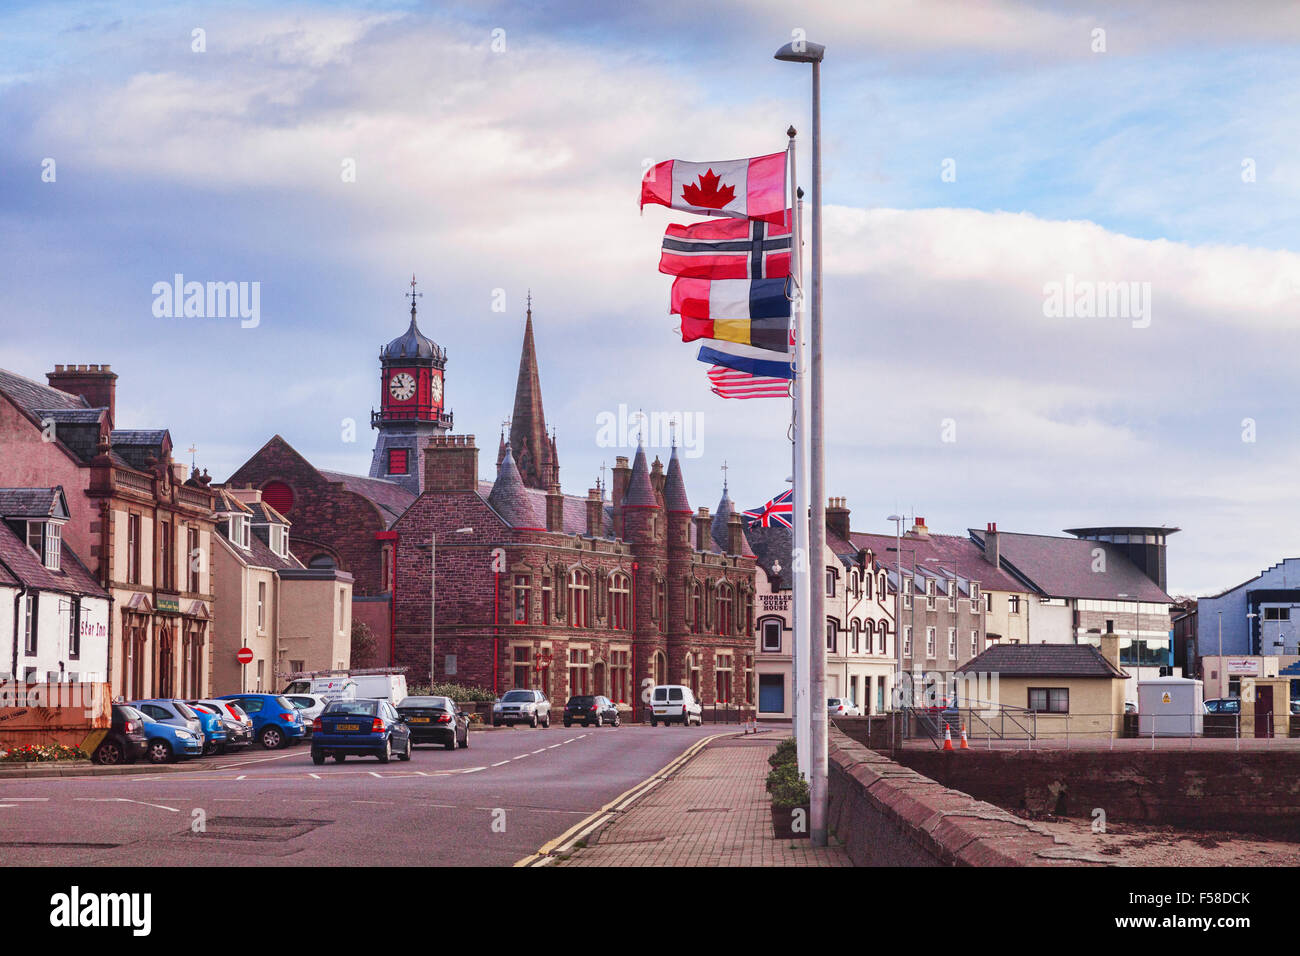 South Beach Street, Stornoway, with the old Council Building, Isle of Lewis, Outer Hebrides, Scotland, UK - Stock Image